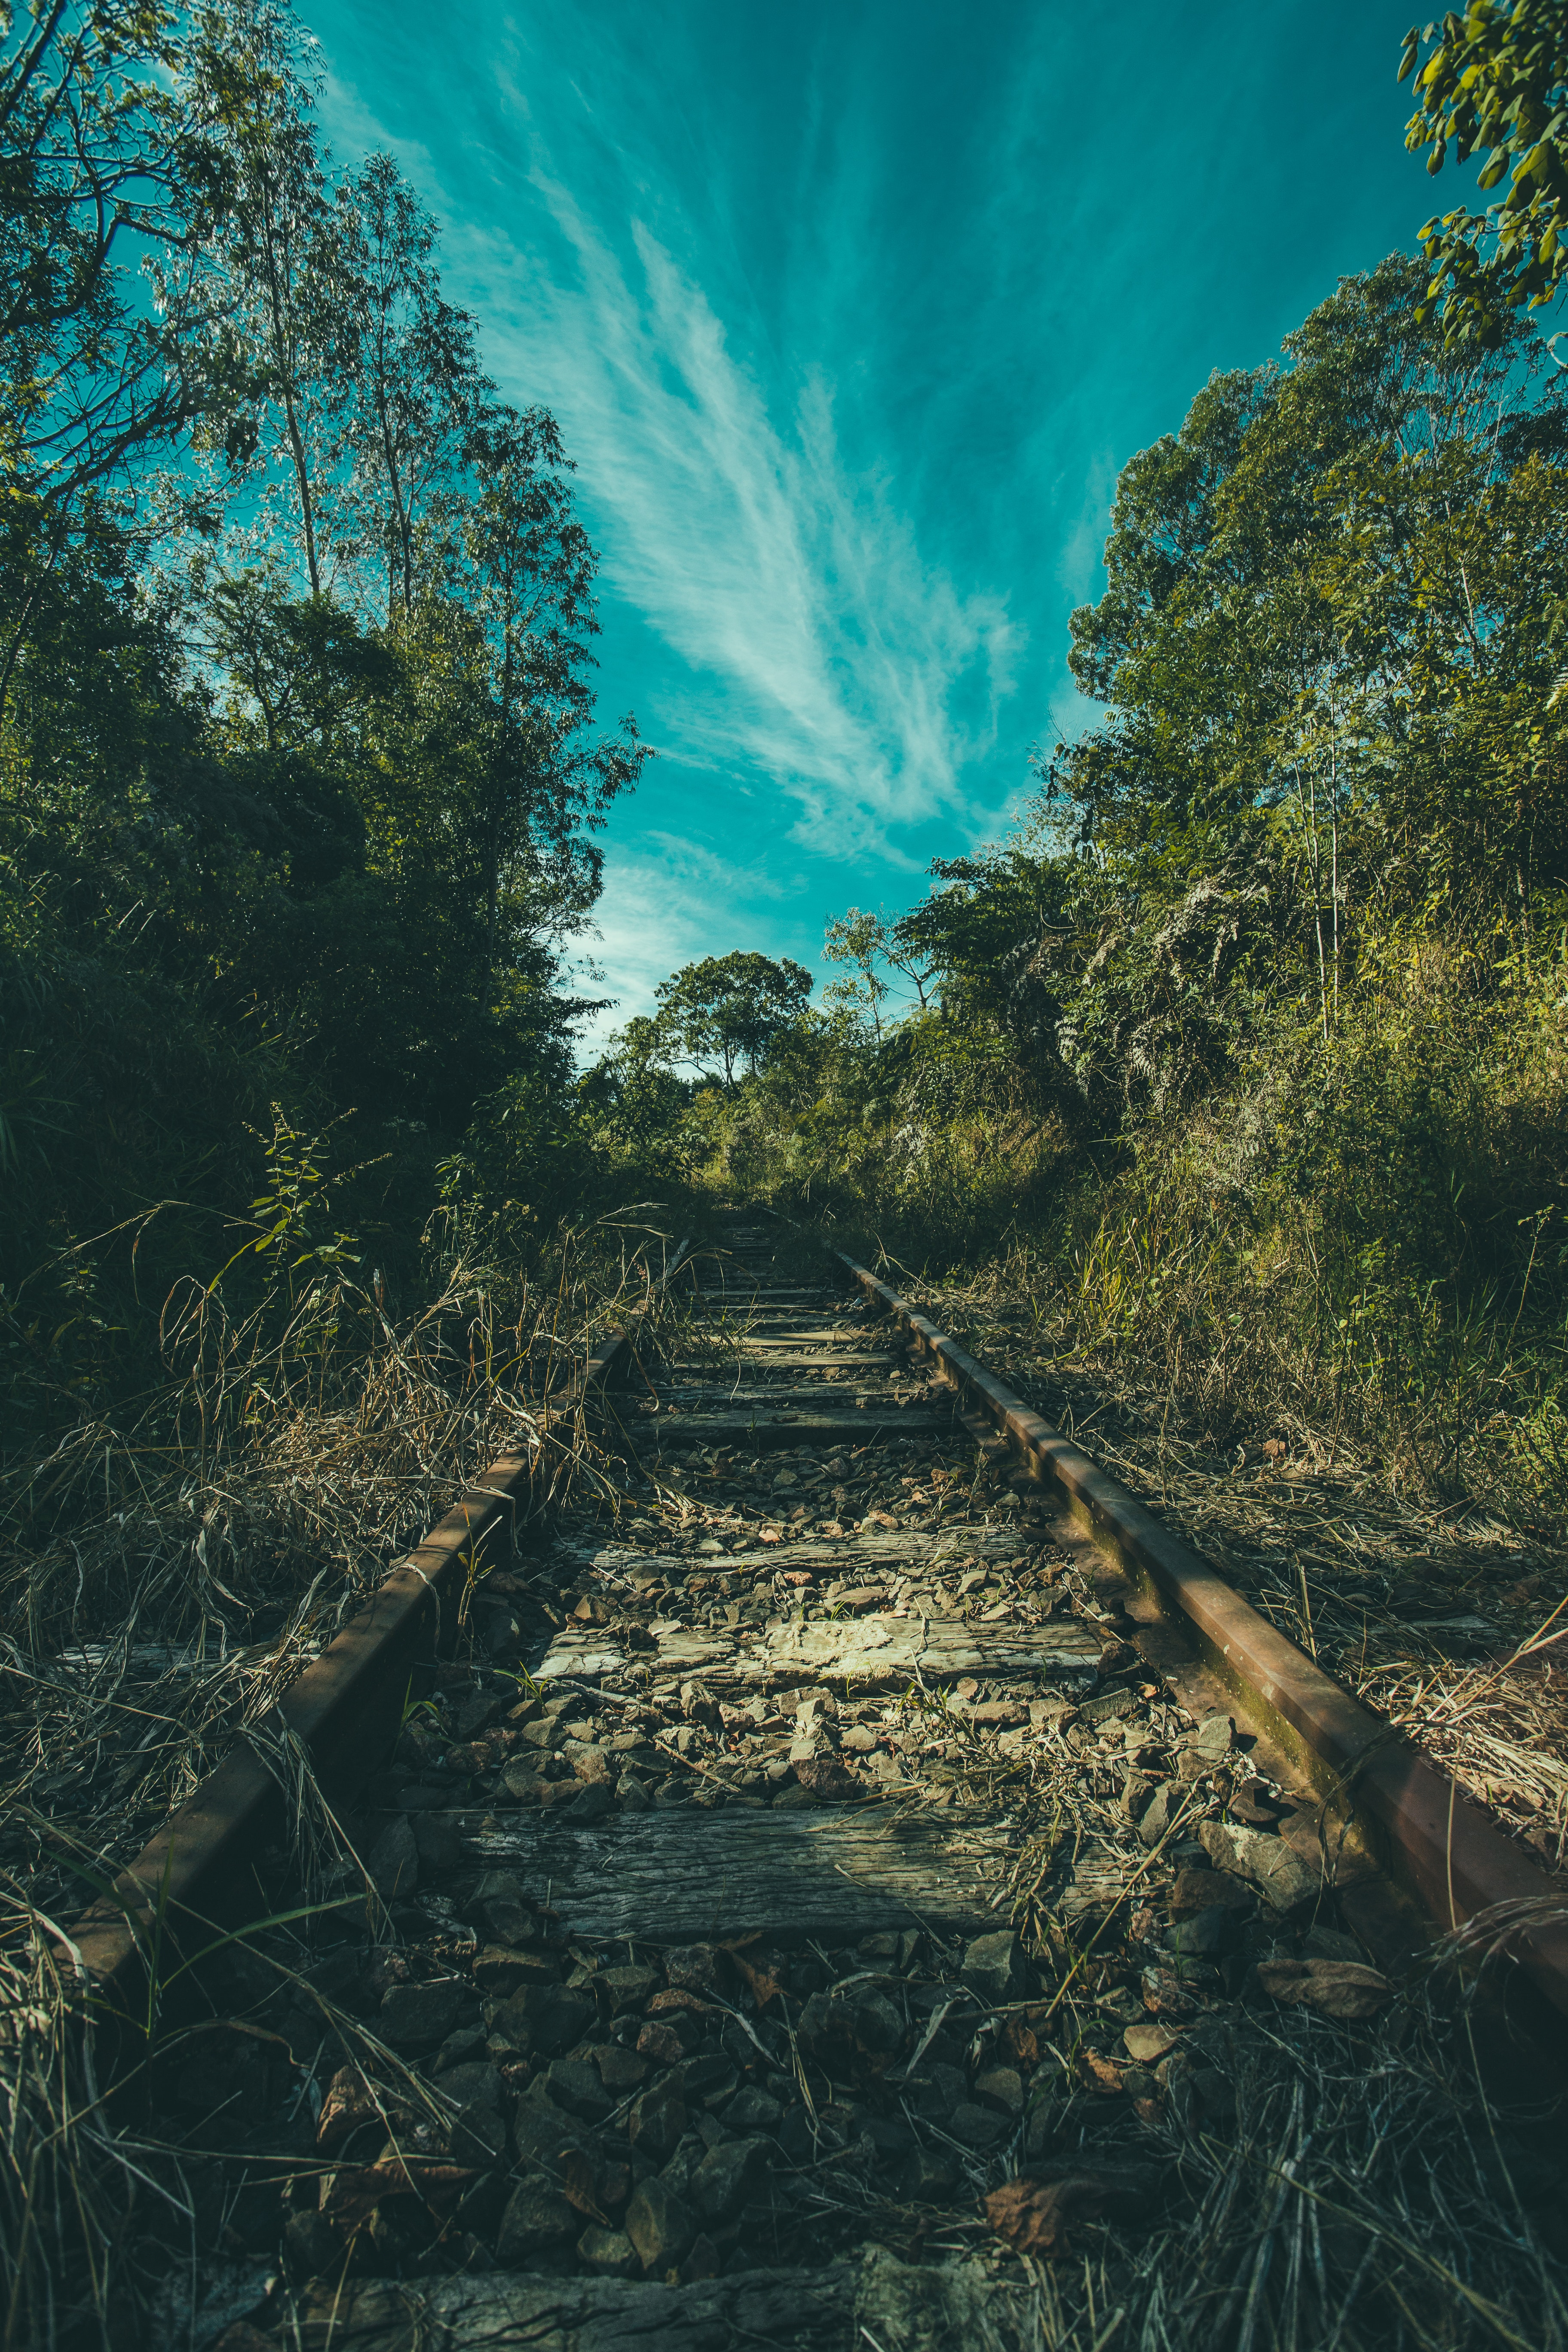 Brown Rail Way Near Green Trees Under Cloudy Blue Sky at Daytime, Sky, Trees, Rocks, Railroad, HQ Photo